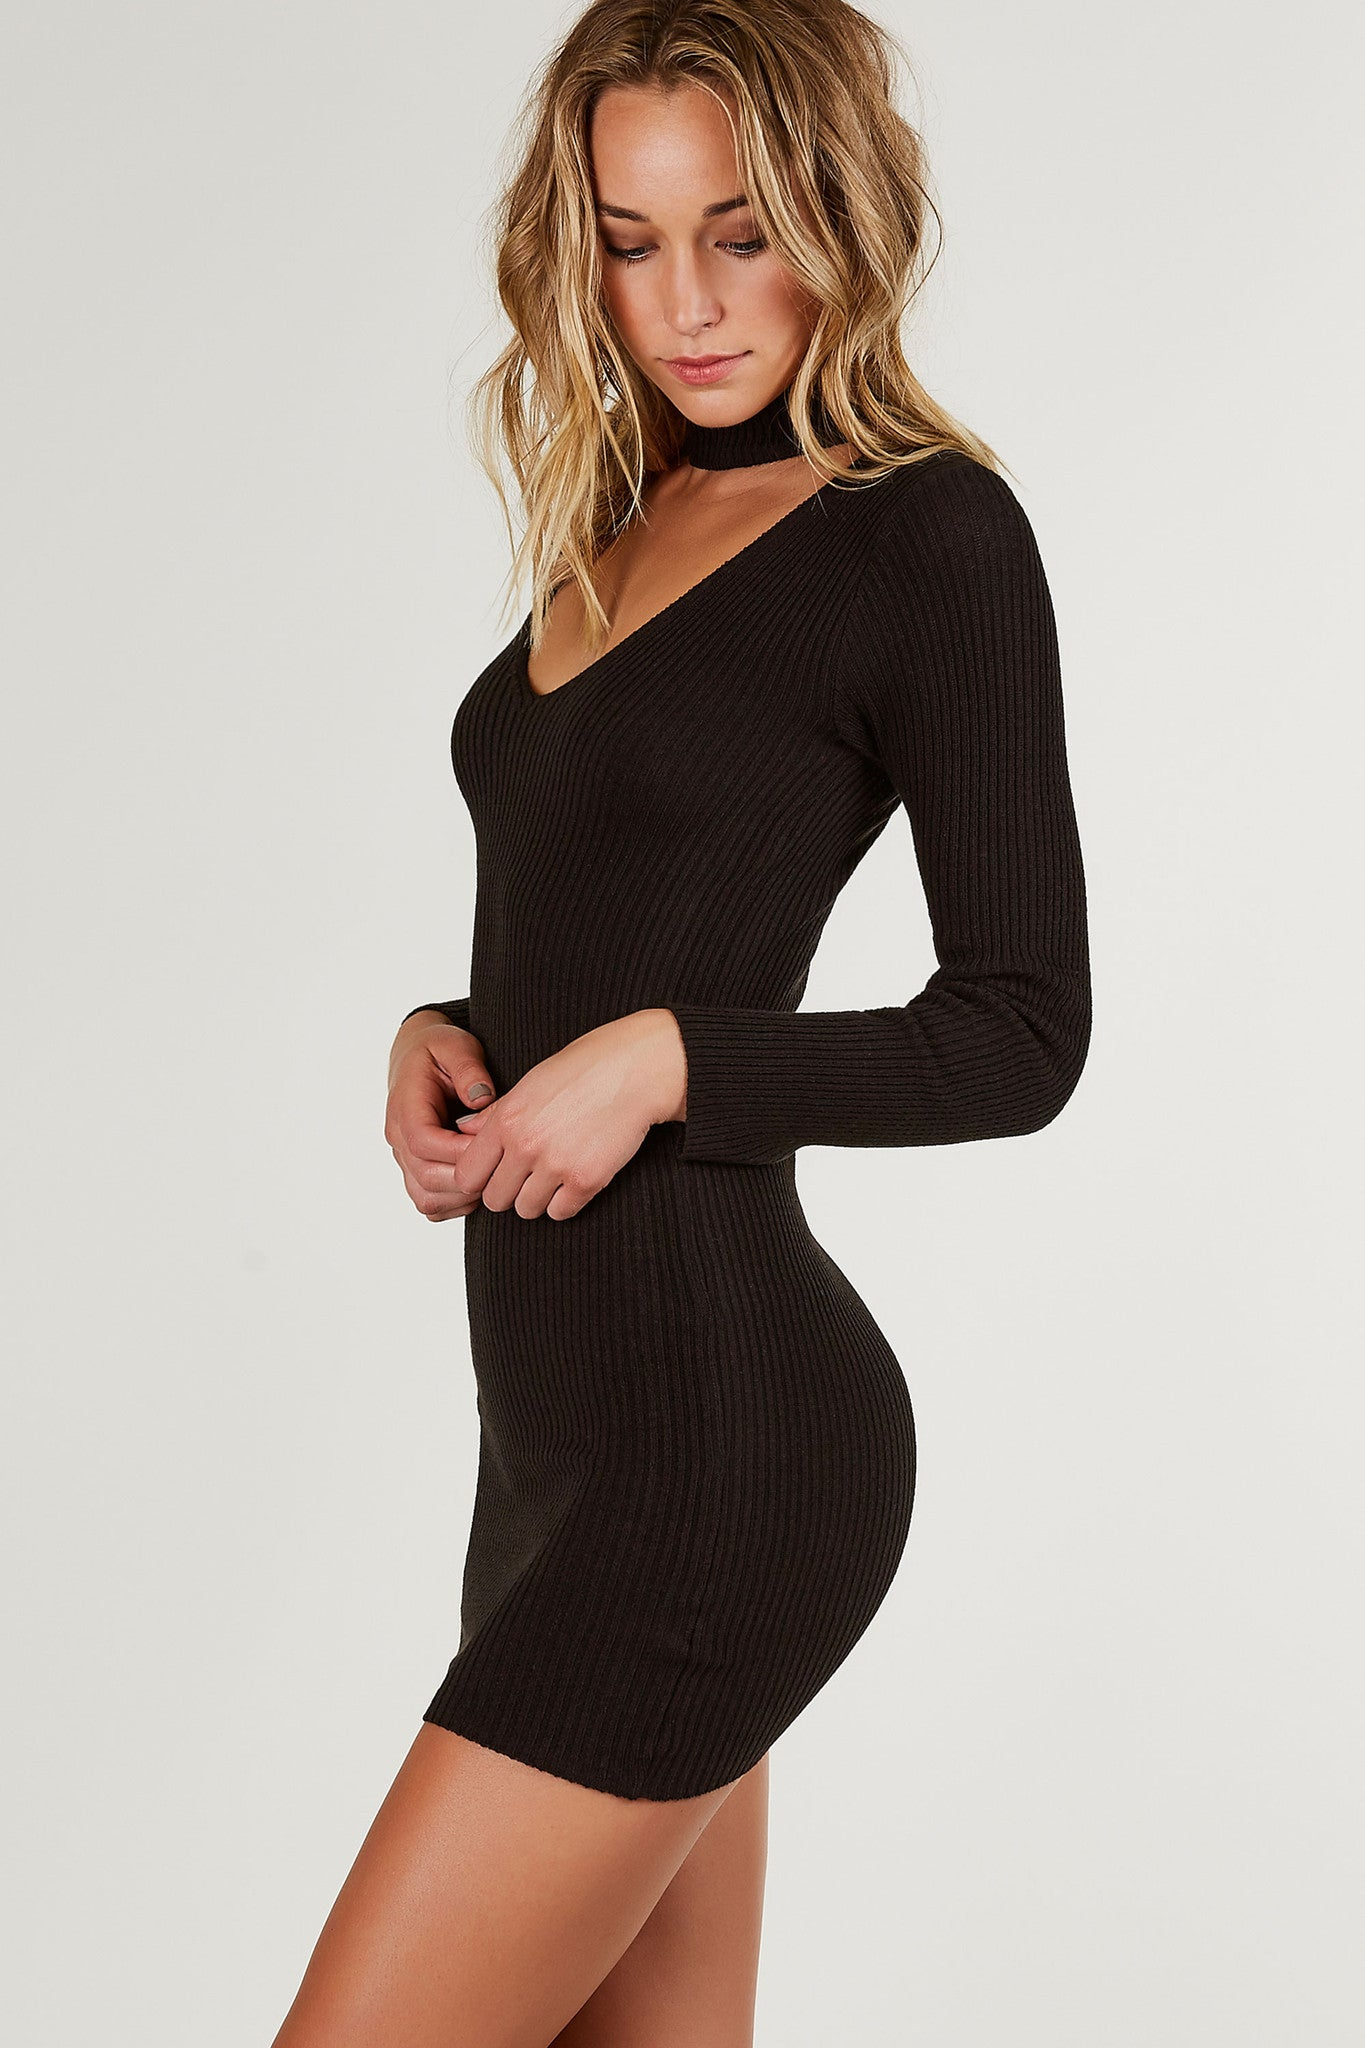 Long sleve ribbed mini dress with trendy choker neckline and V-shape cut out in front. Stretchy material with bodycon fit and straight hem all around.